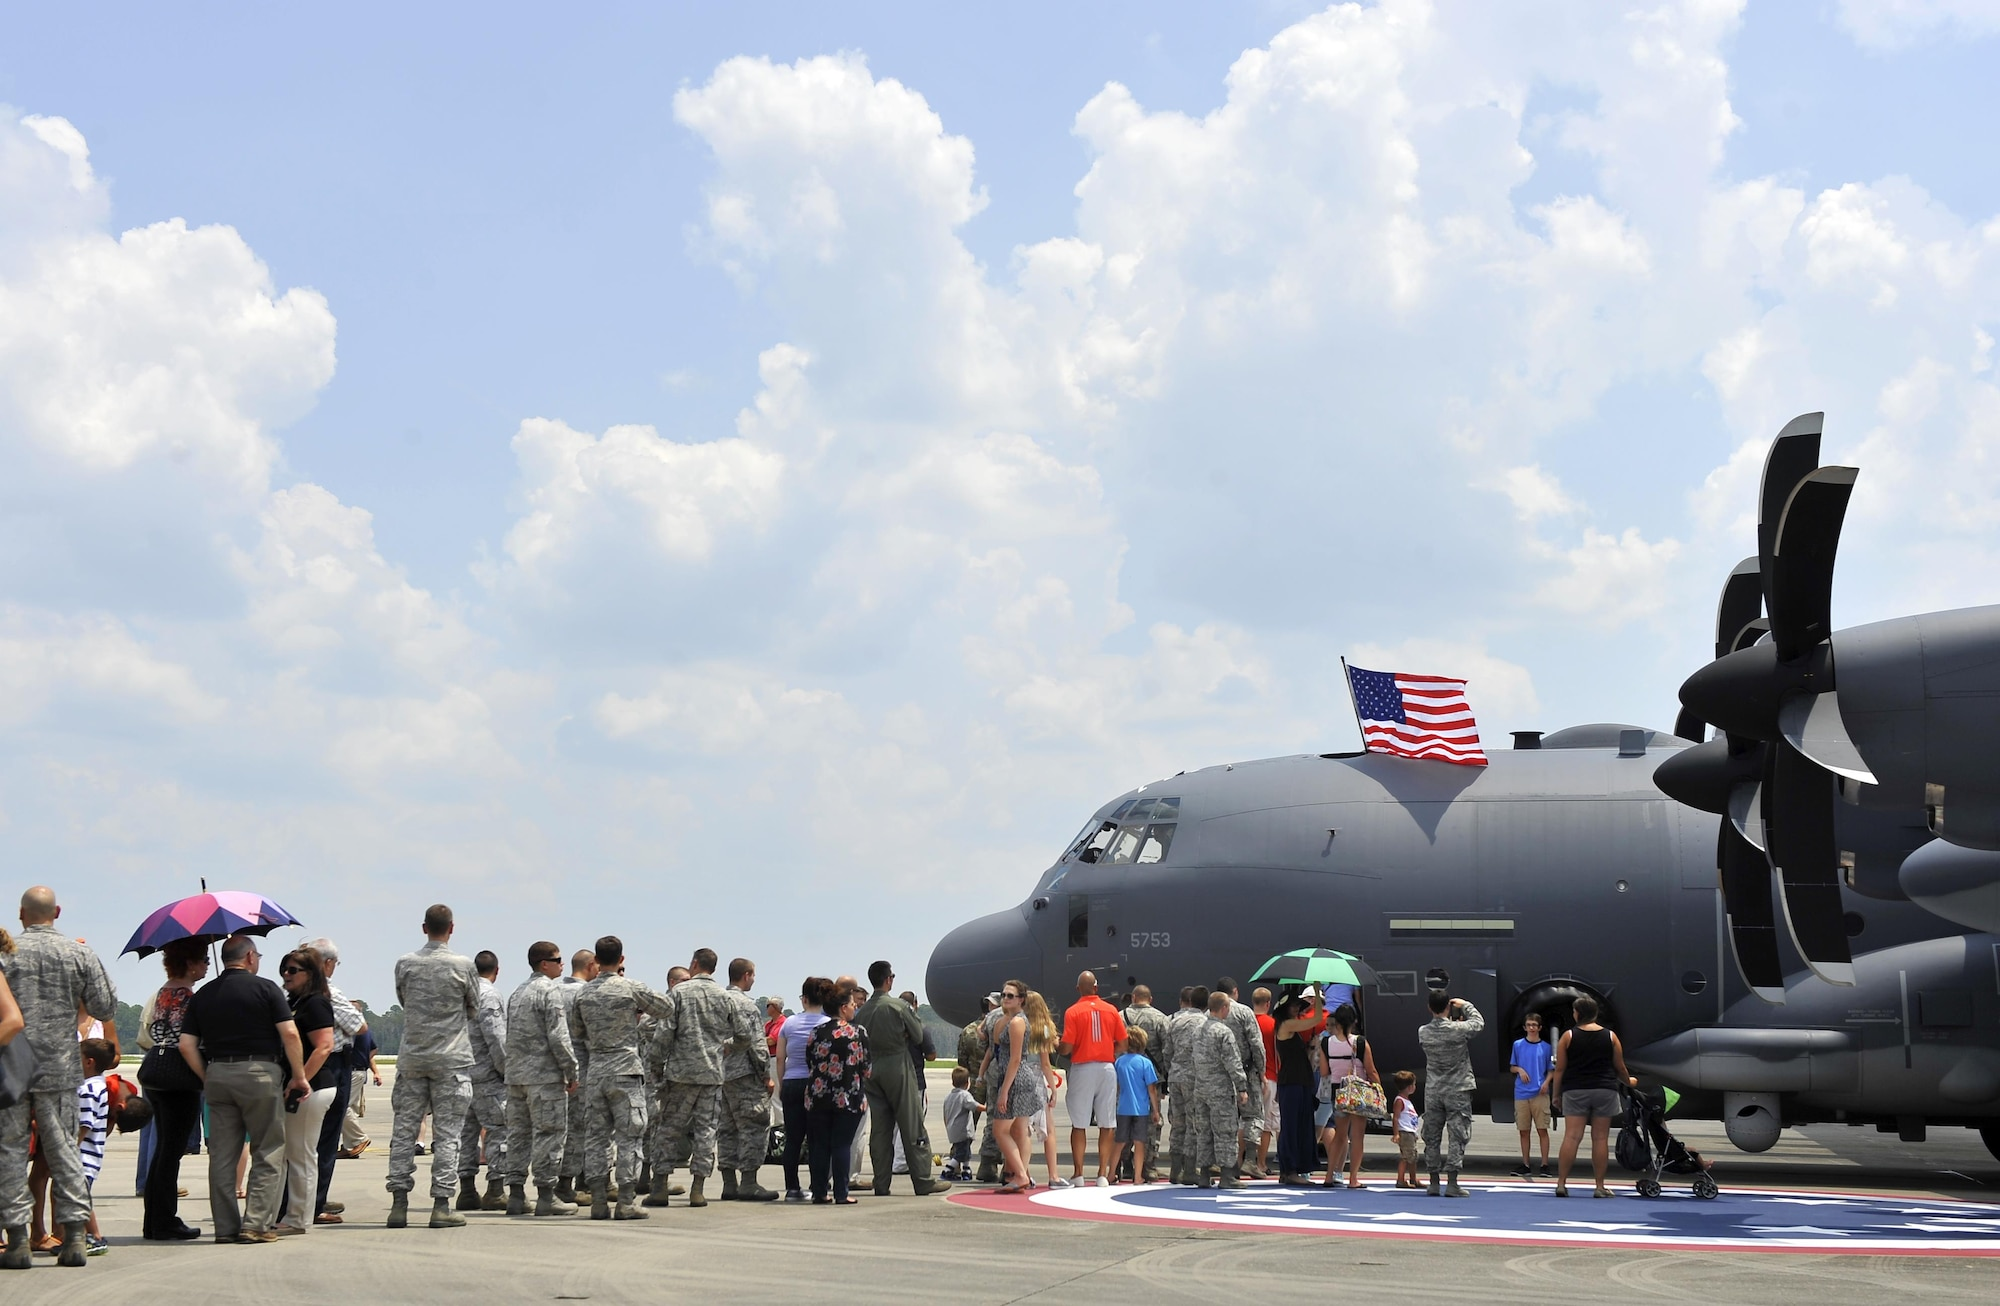 A crowd gathers to view the inside of the Air Force Special Operations Command's first AC-130J Ghostrider at Hurlburt Field, Fla., July 29, 2015. The aircrews of the 1st Special Operations Group Detachment 2 were hand selected from the AC-130 community for their operational expertise and will begin initial operational testing and evaluation of the AC-130J later this year. (U.S. Air Force photo by Airman Kai White/Released)